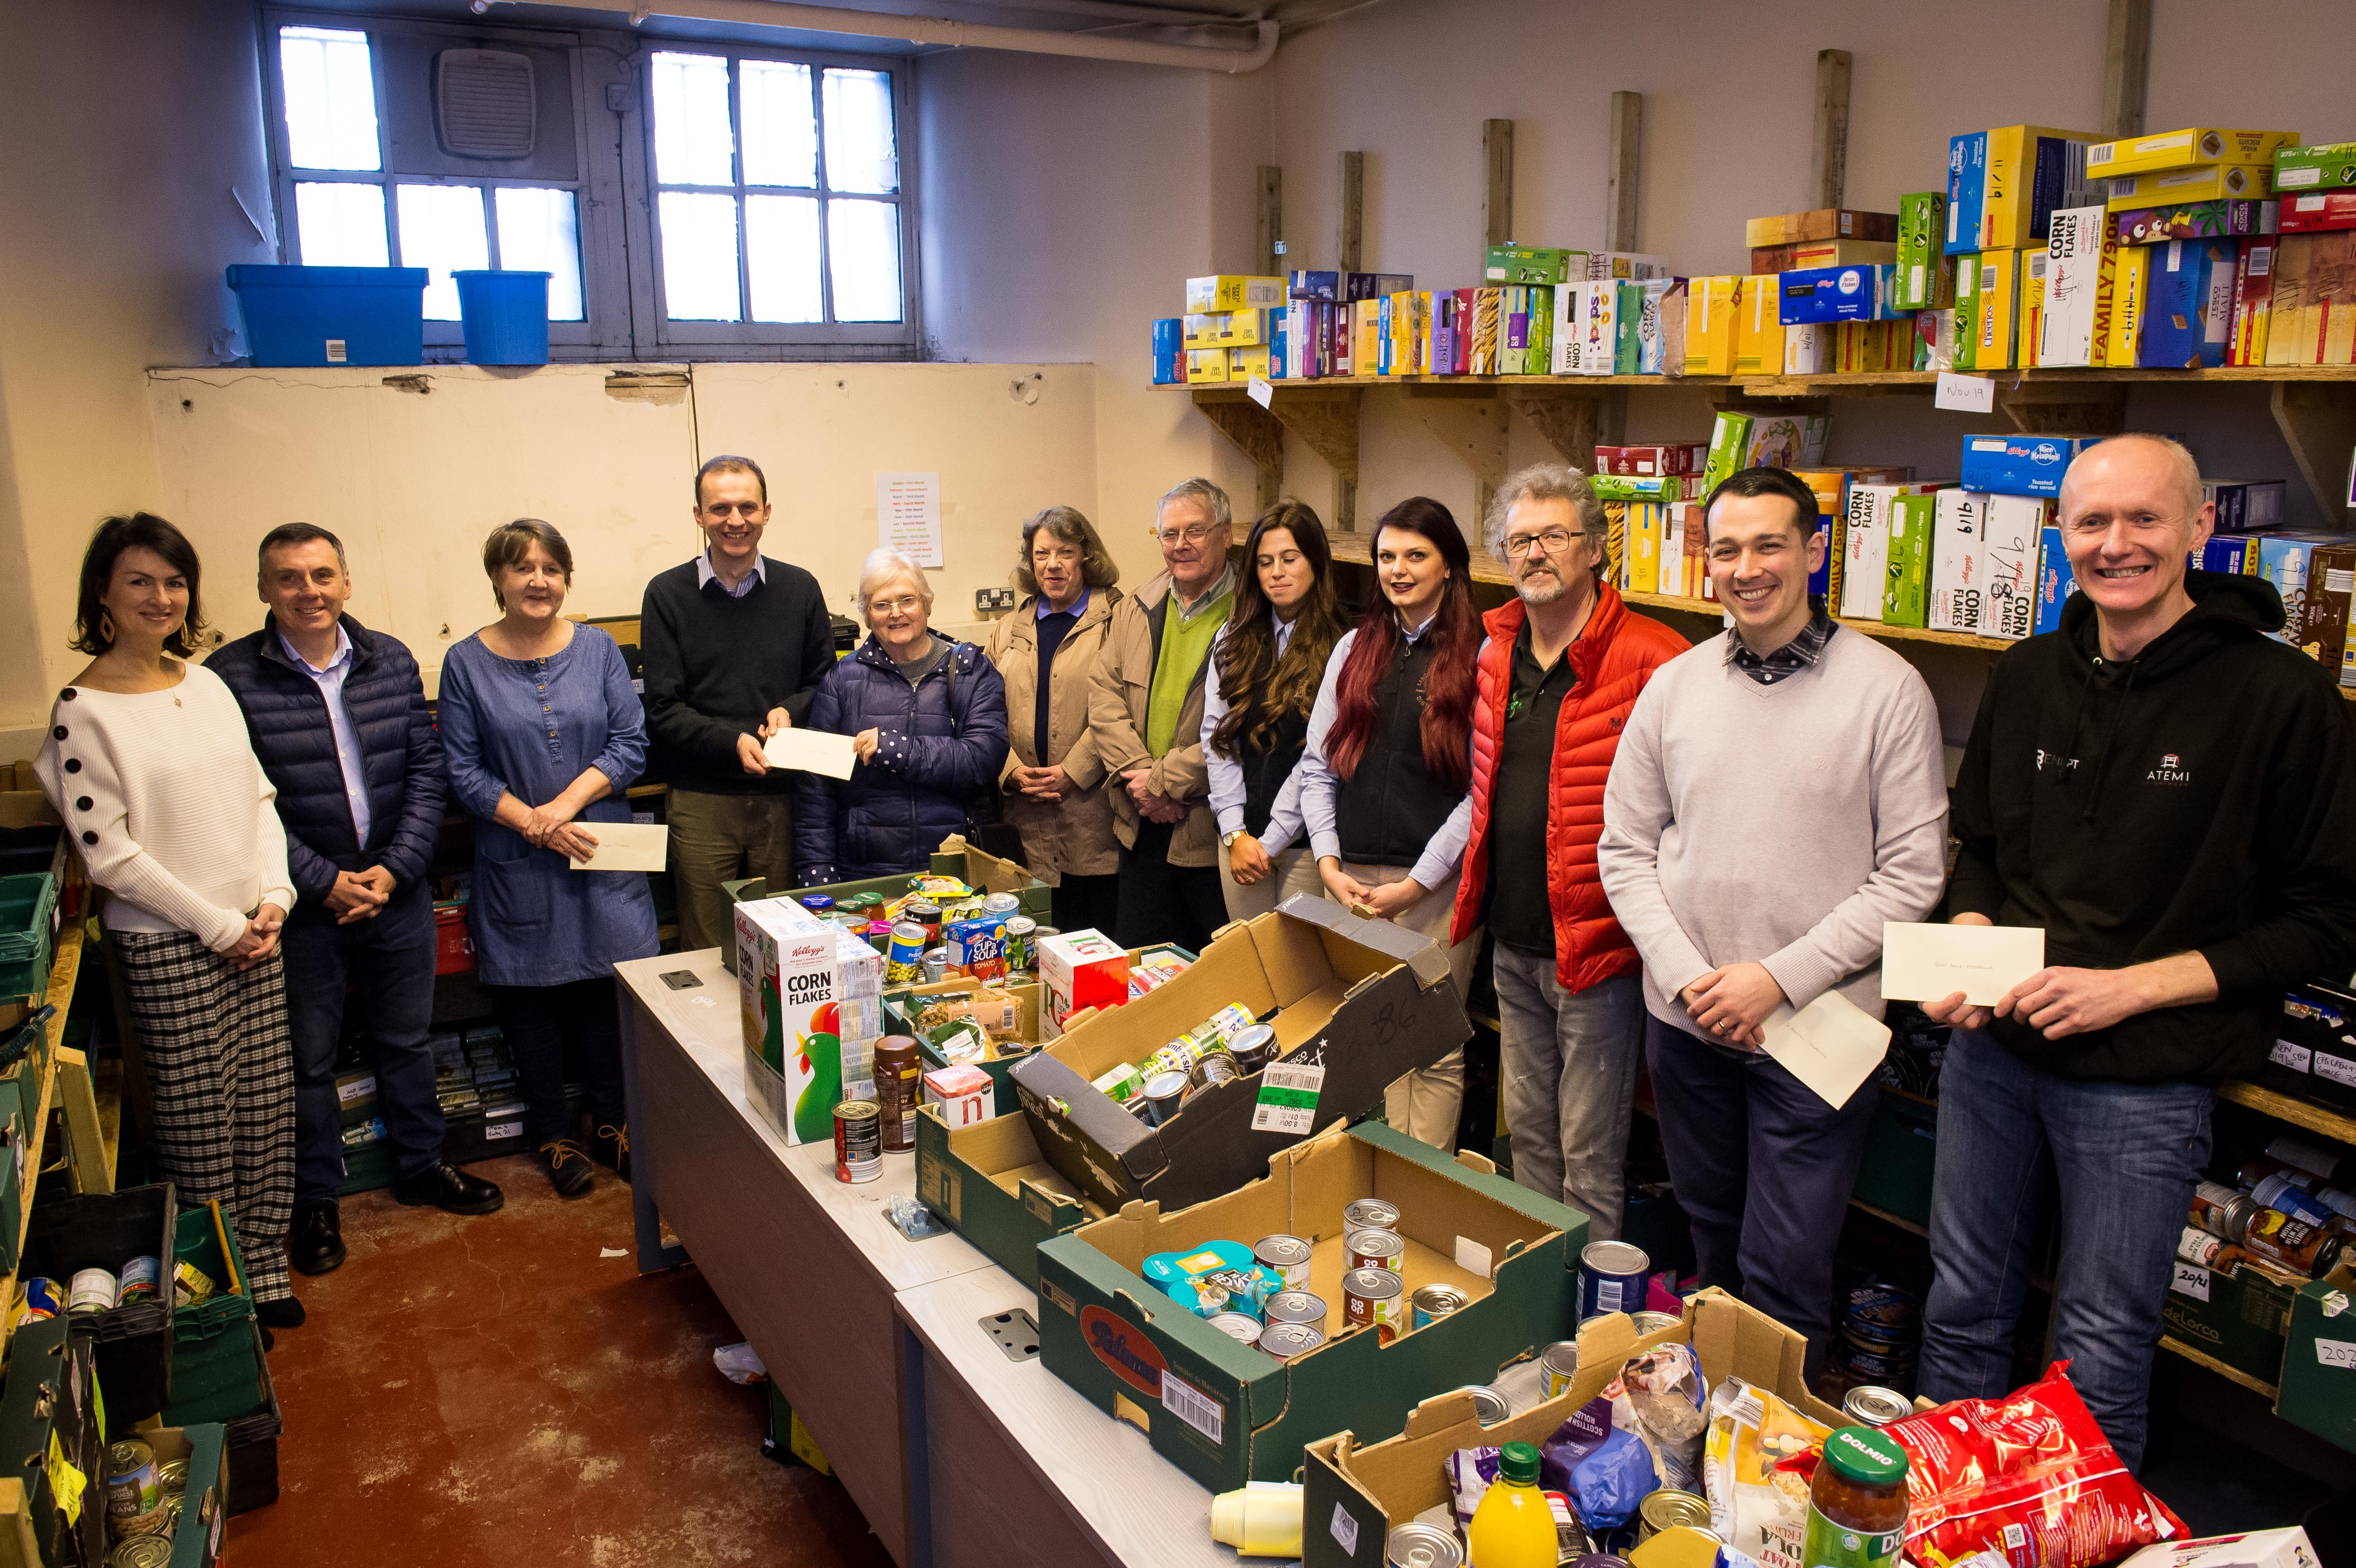 Stephen Gethins MP presenting all foodbanks in North East Fife - Cupar, Tay Bridgehead, East Neuk, Levenmouth and Storehouse (St Andrews) - with donations raised by the Parliamentary Christmas Card competition which raised £700 in total. Representatives of the foodbanks plus sponsors will be in attendance  In Pic.......... Lucy Mitchell, sponsor, Owen Hazel, sponsor, Fiona Finlay, Cupar foodbank, Stephen Gethins MP, Muriel O'neill, Lizzie Myles and David Myles, all Tay Bridgehead foodbank, Katie Scott and Stephanie Wilkie, from sponsors, Lindores Abbey Distillery, Stewart English, Levenmouth foodbank, Jim Cronin, St Andrews foodbank, Richard Wemyss, East Neuk foodbank,